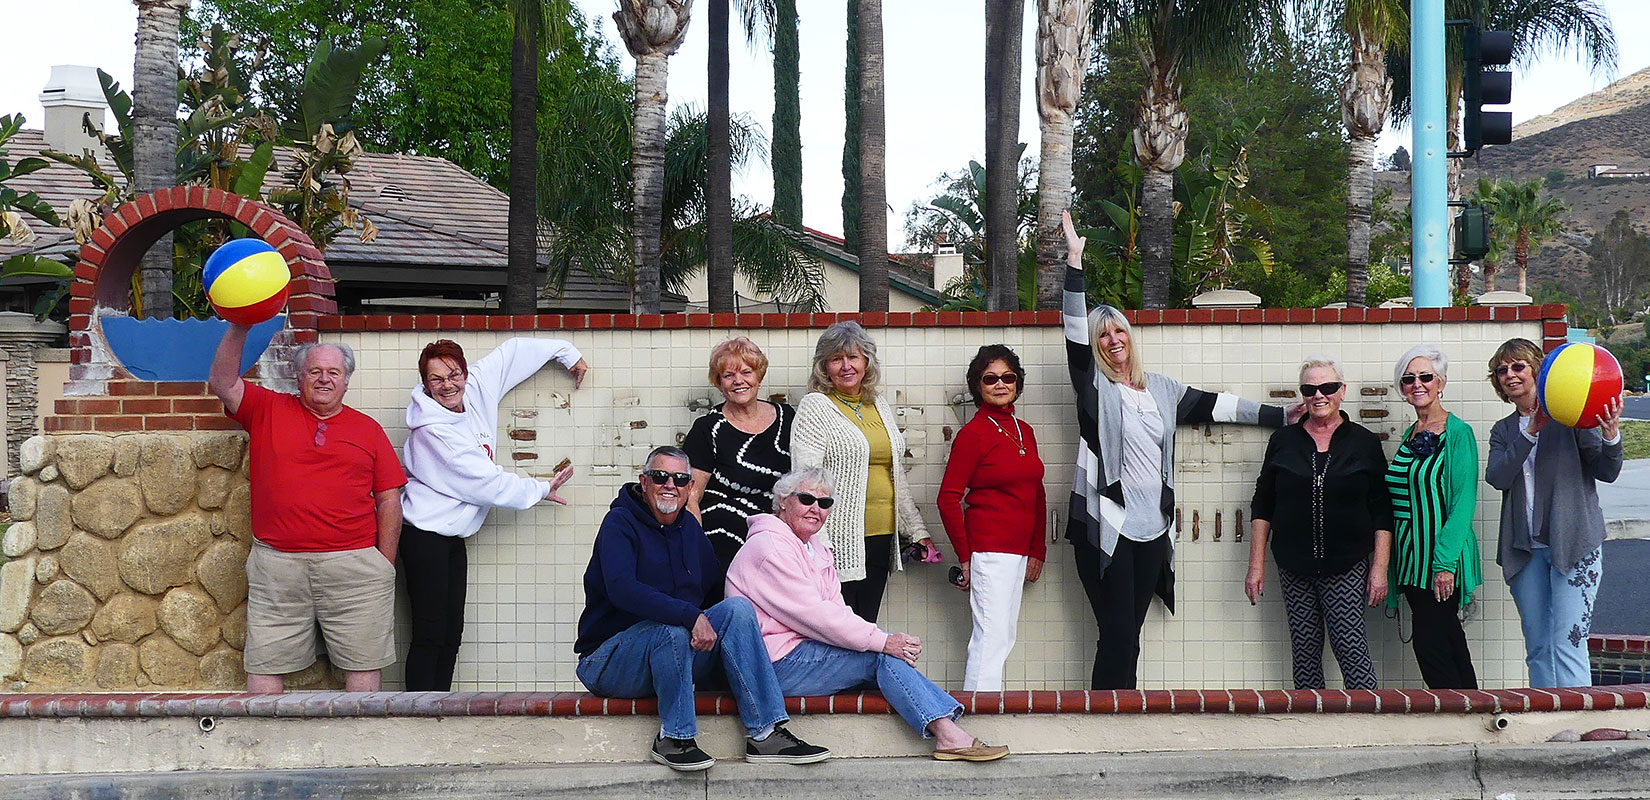 Several members of the Senior Chair Volleyball Club also got their picture taken at the entry monument, though the gold letters had already been removed. Two members used their arms to indicate the 'C' and the 'L' of Canyon Lake in the photo taken by Bert Barbay.